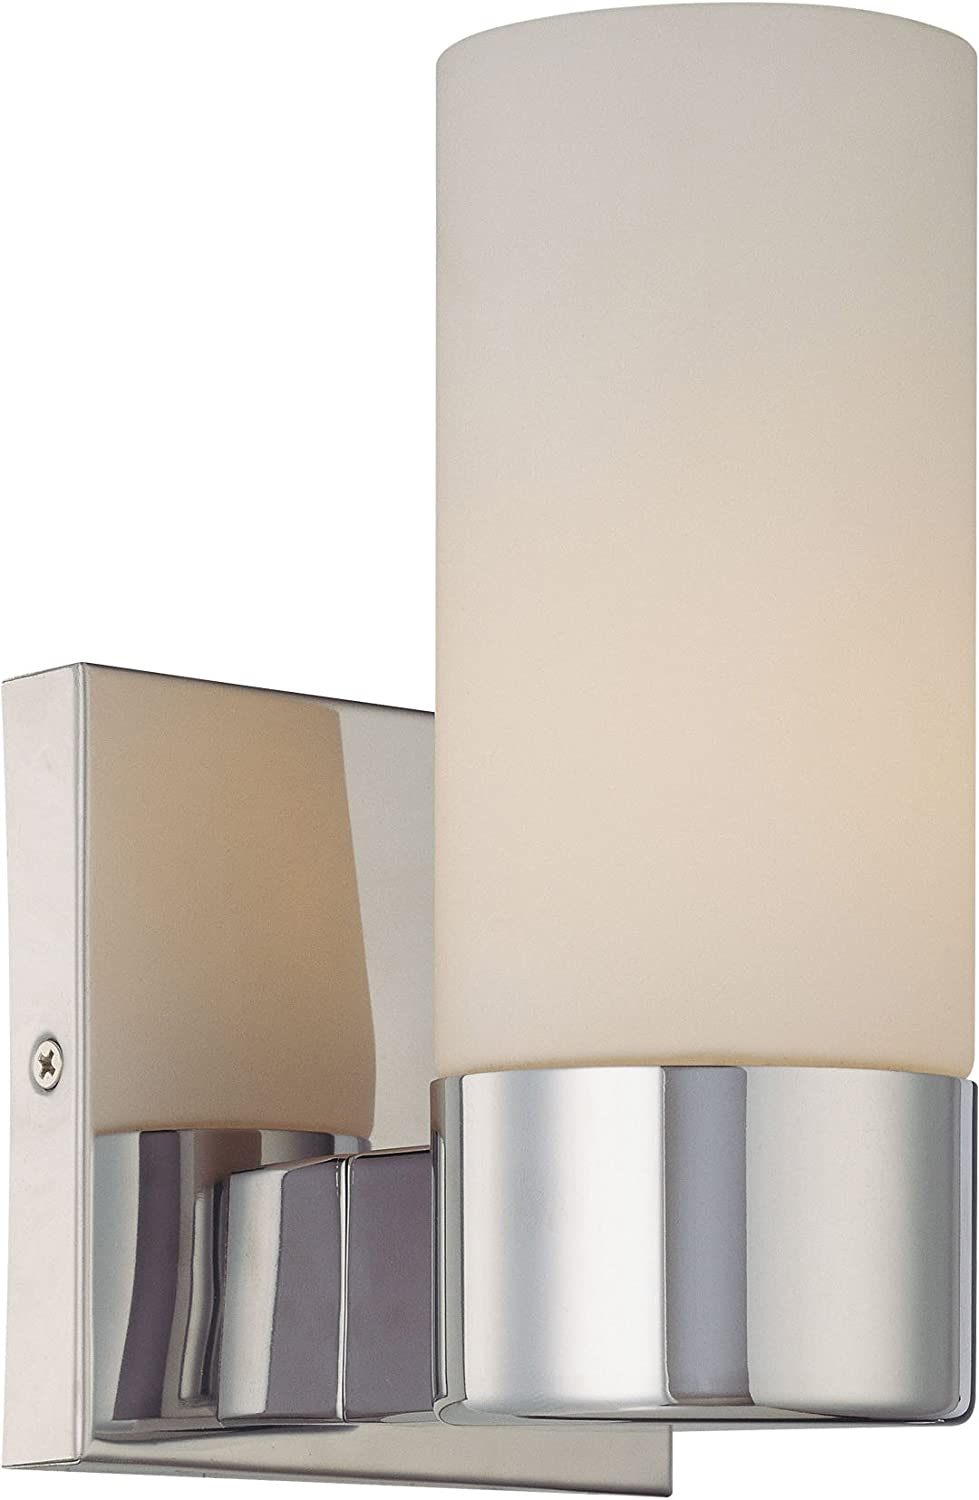 Minka Lavery Wall Sconce Lighting 6211-77, Wall Sconces Reversible Glass Damp Bath Vanity Fixture, 1 Light, 60 Watts, Chrome